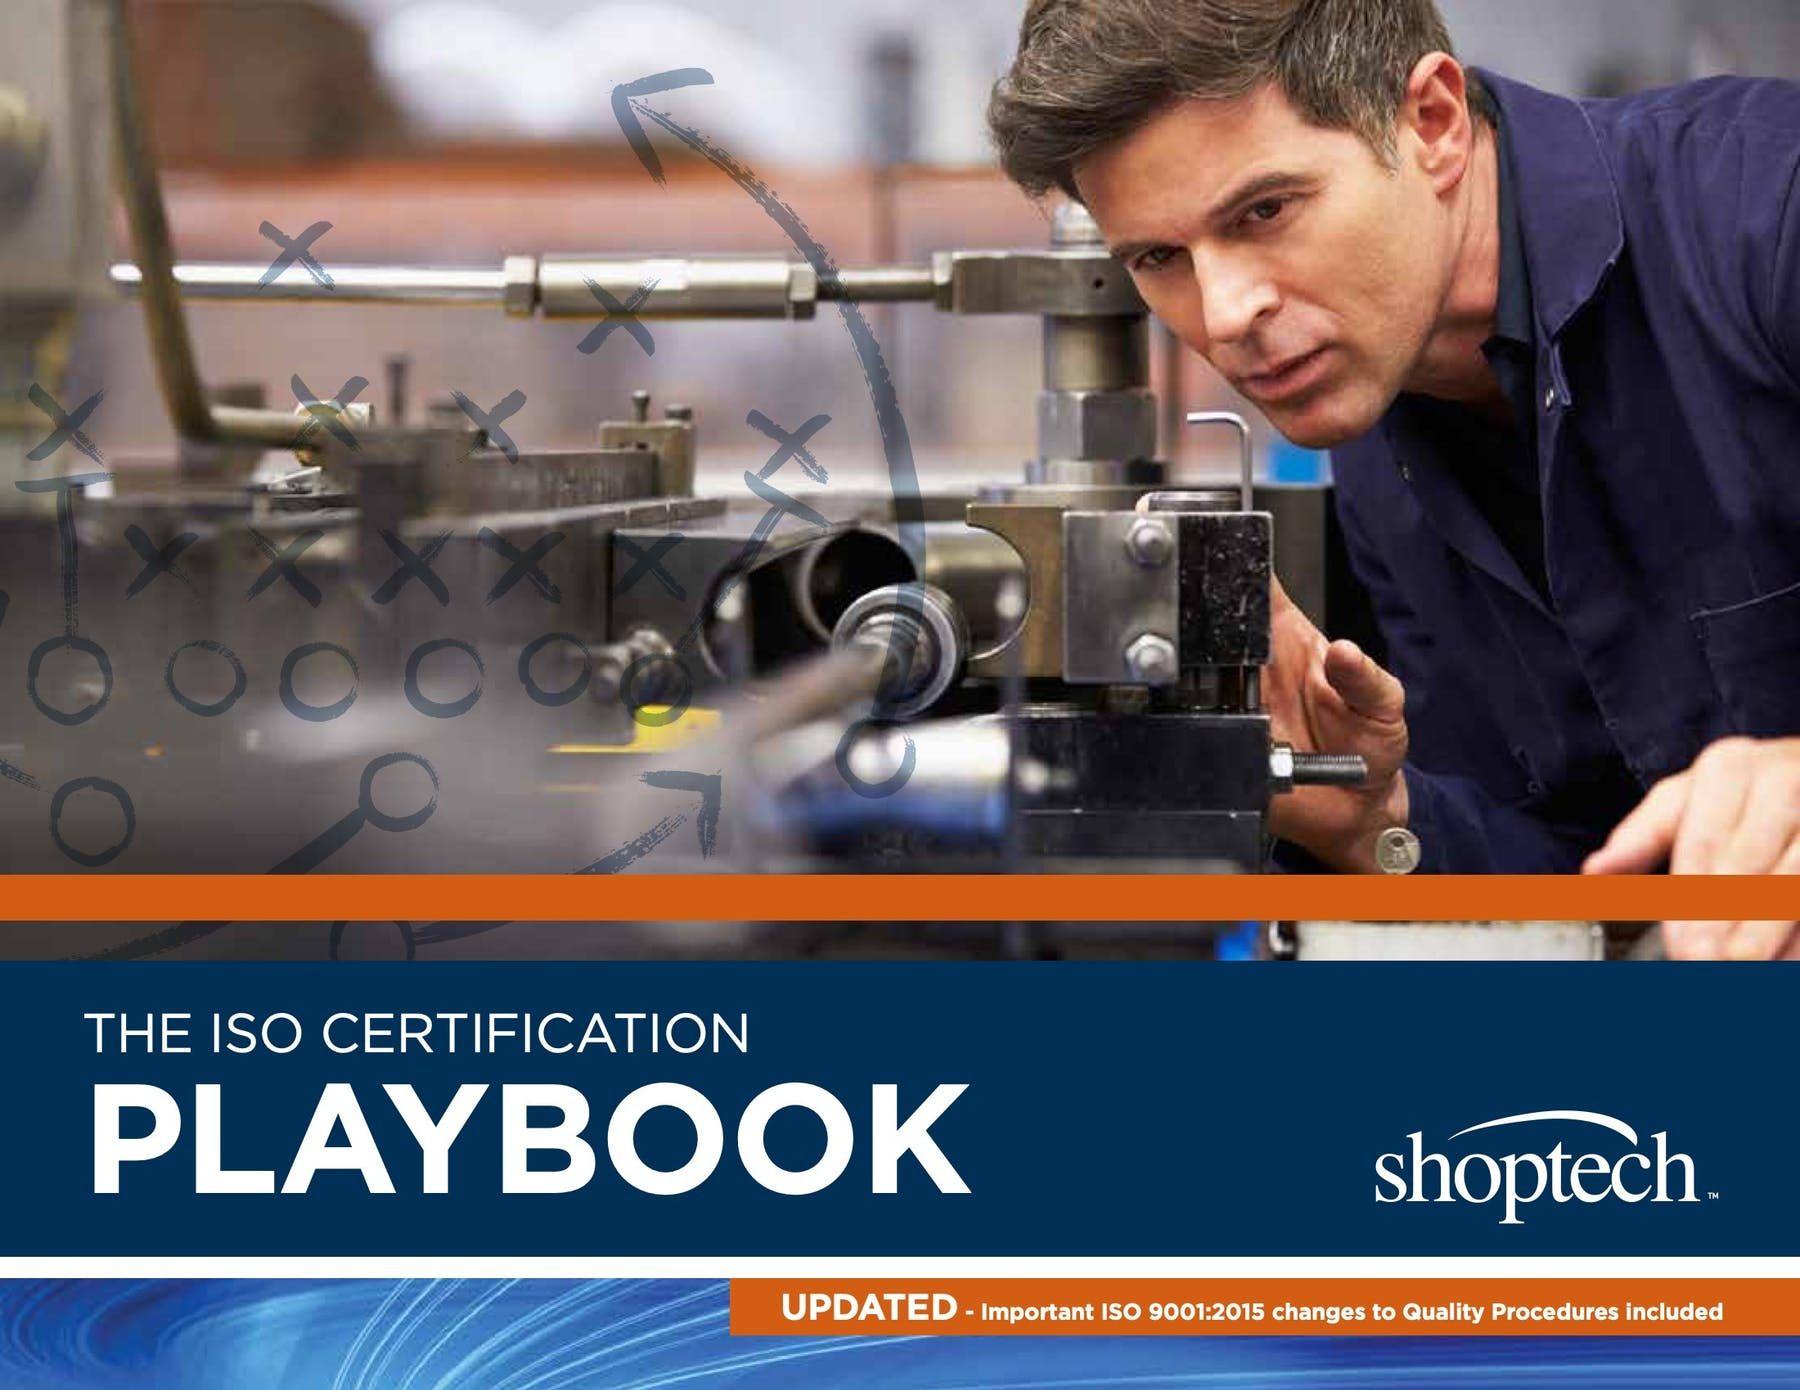 E2 Shop System White Paper - The ISO Certification Playbook